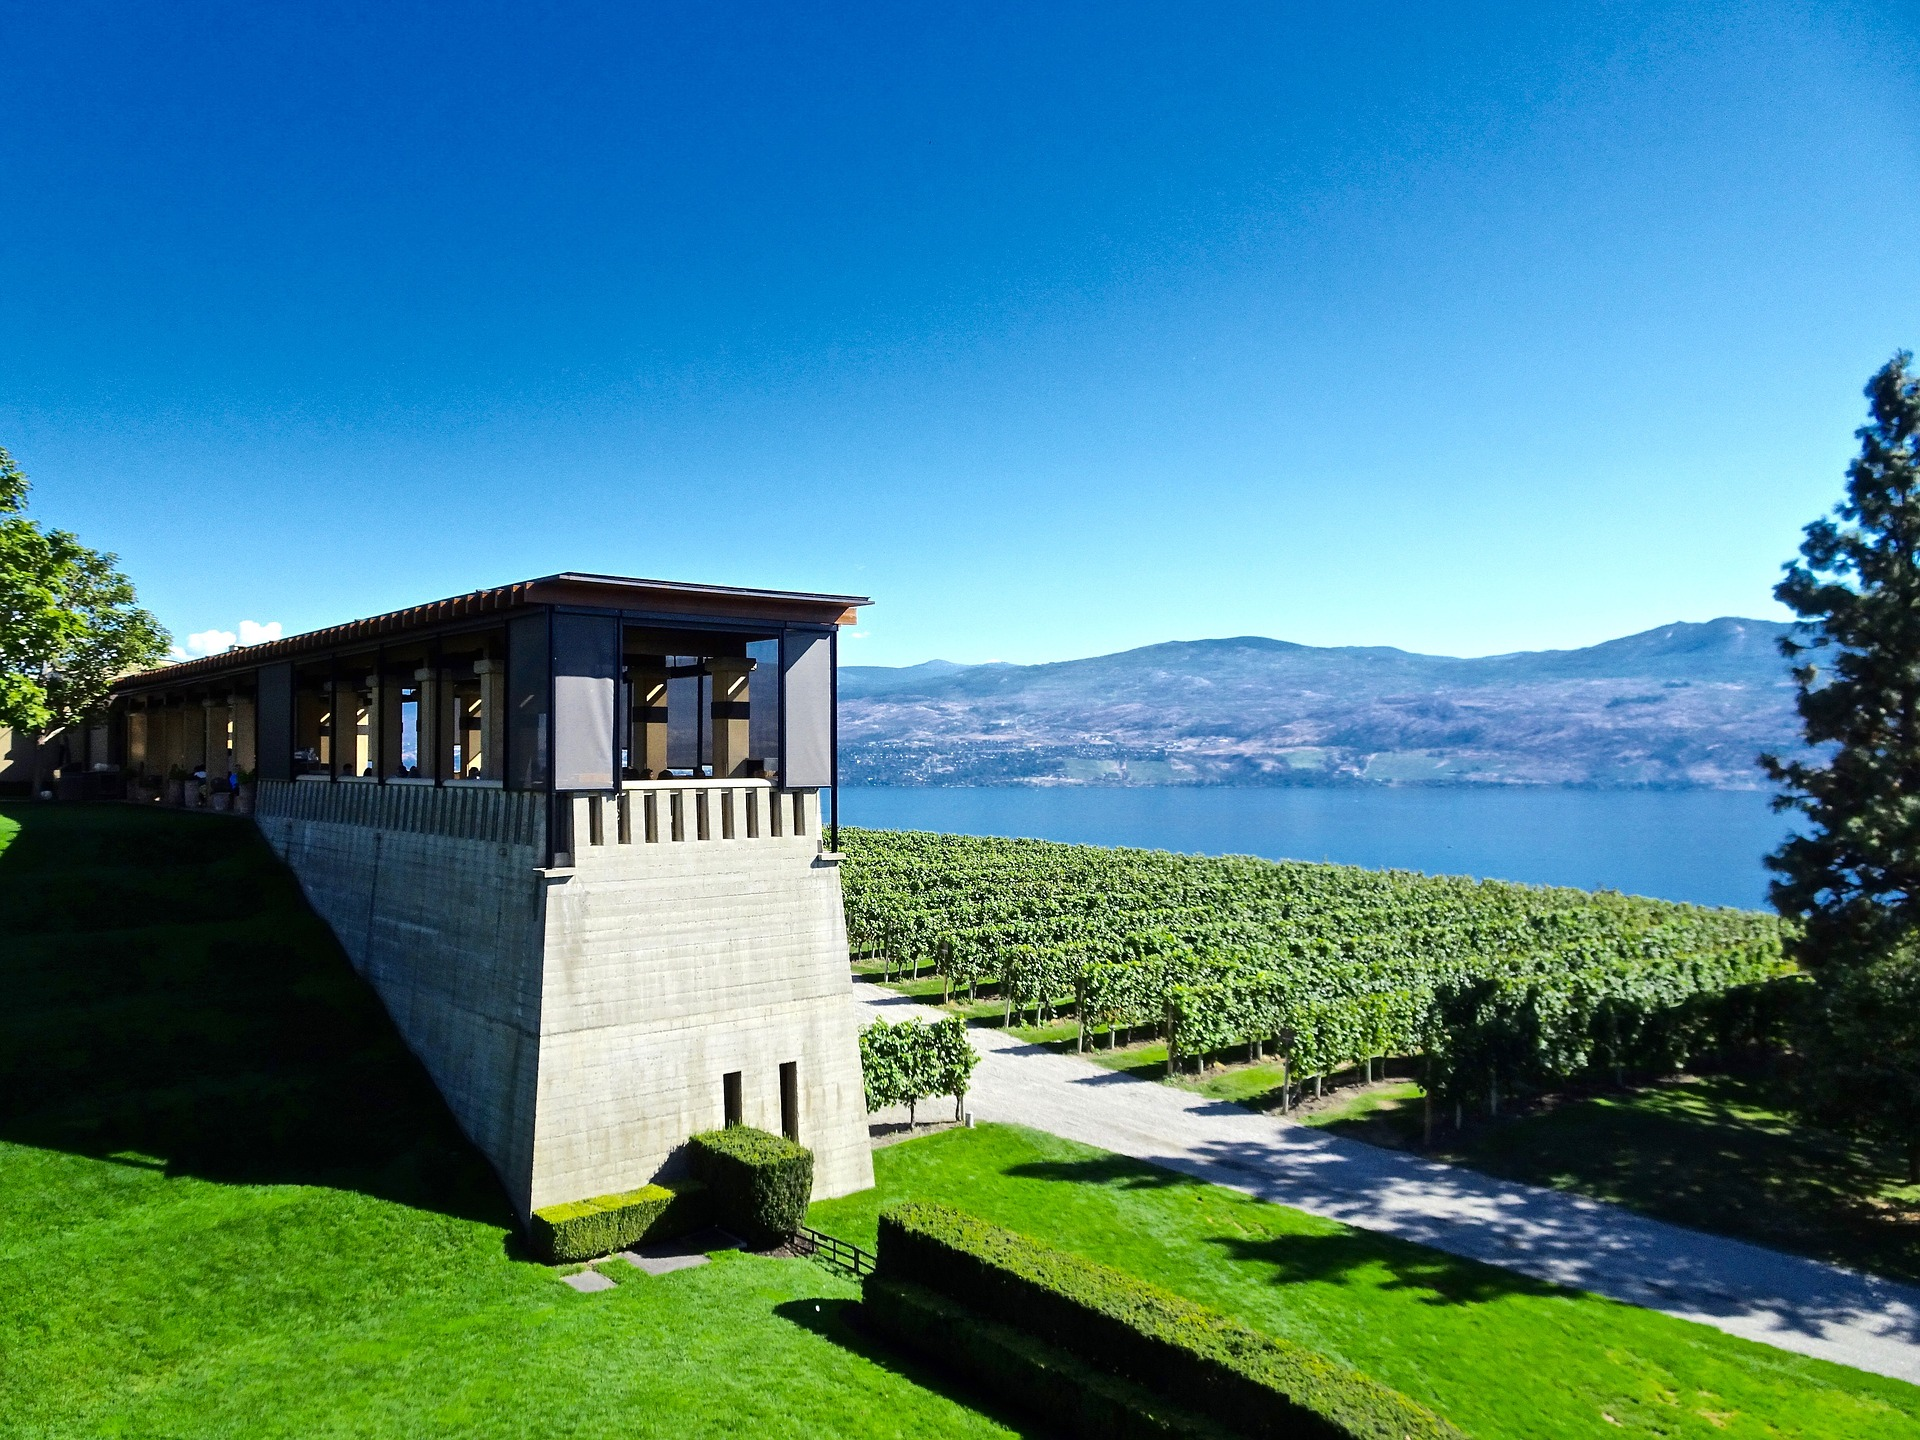 summer scene mission hill winery kelowna